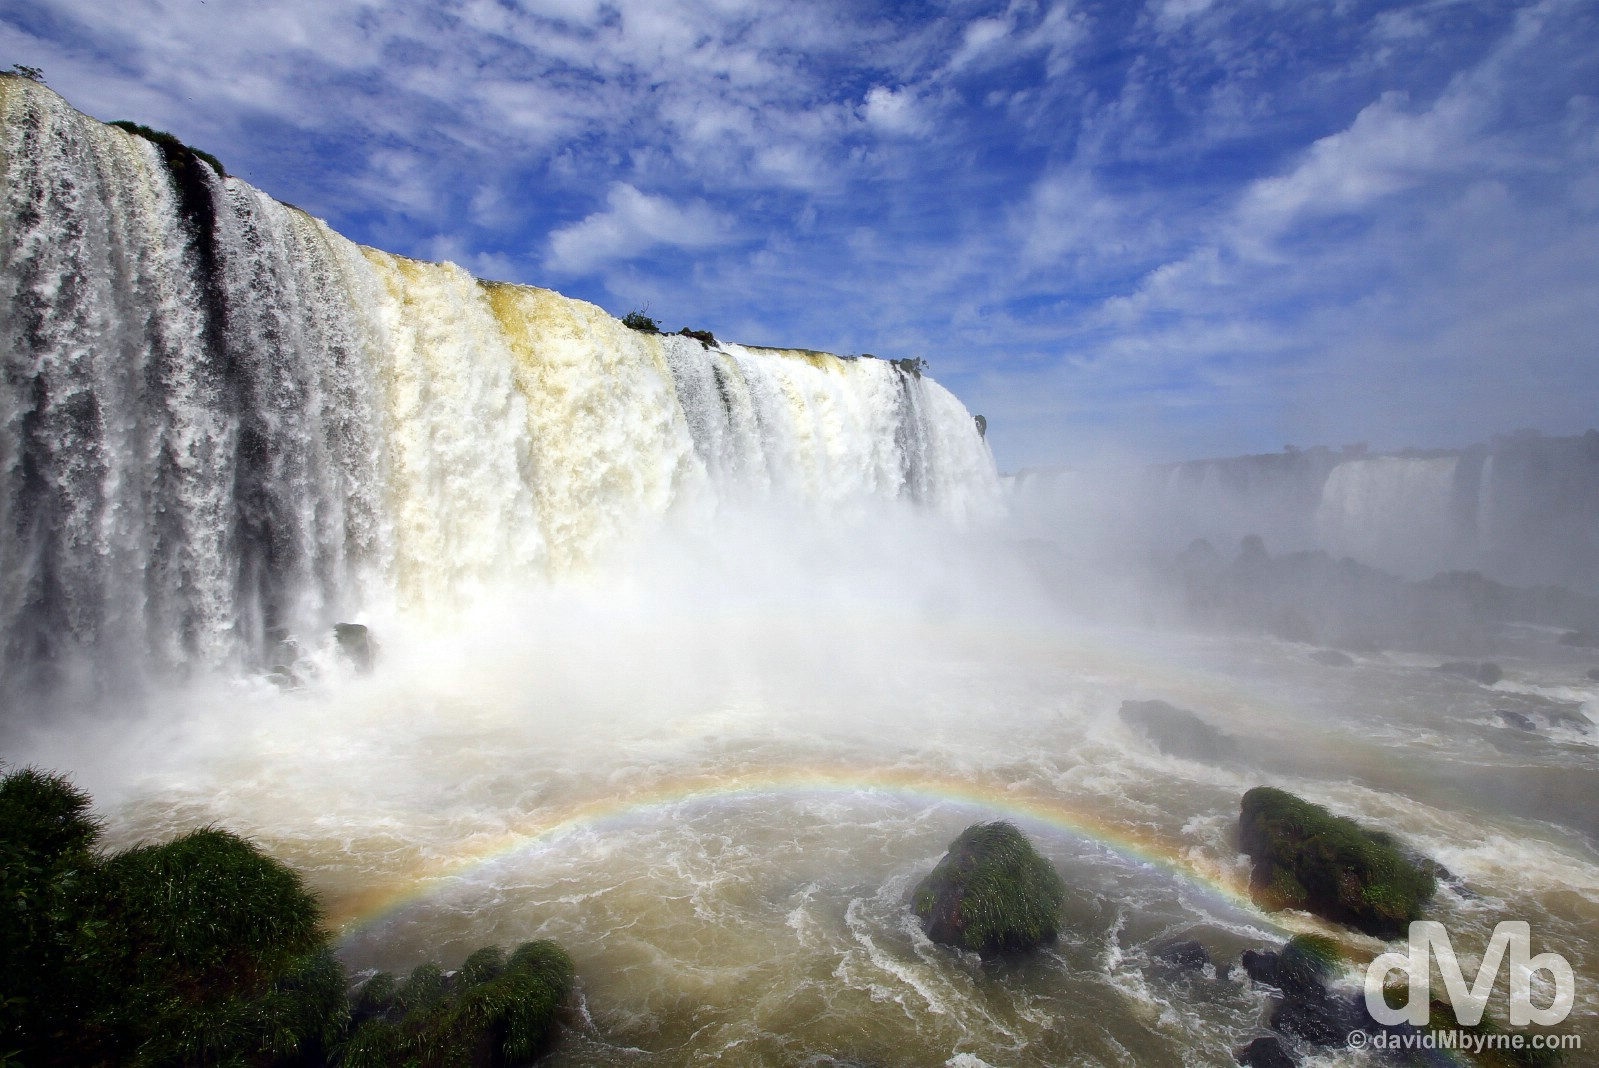 Rainbow at Iguazu Falls in Parque Nacional Do Iguacu, Brazil. September 12, 2015.